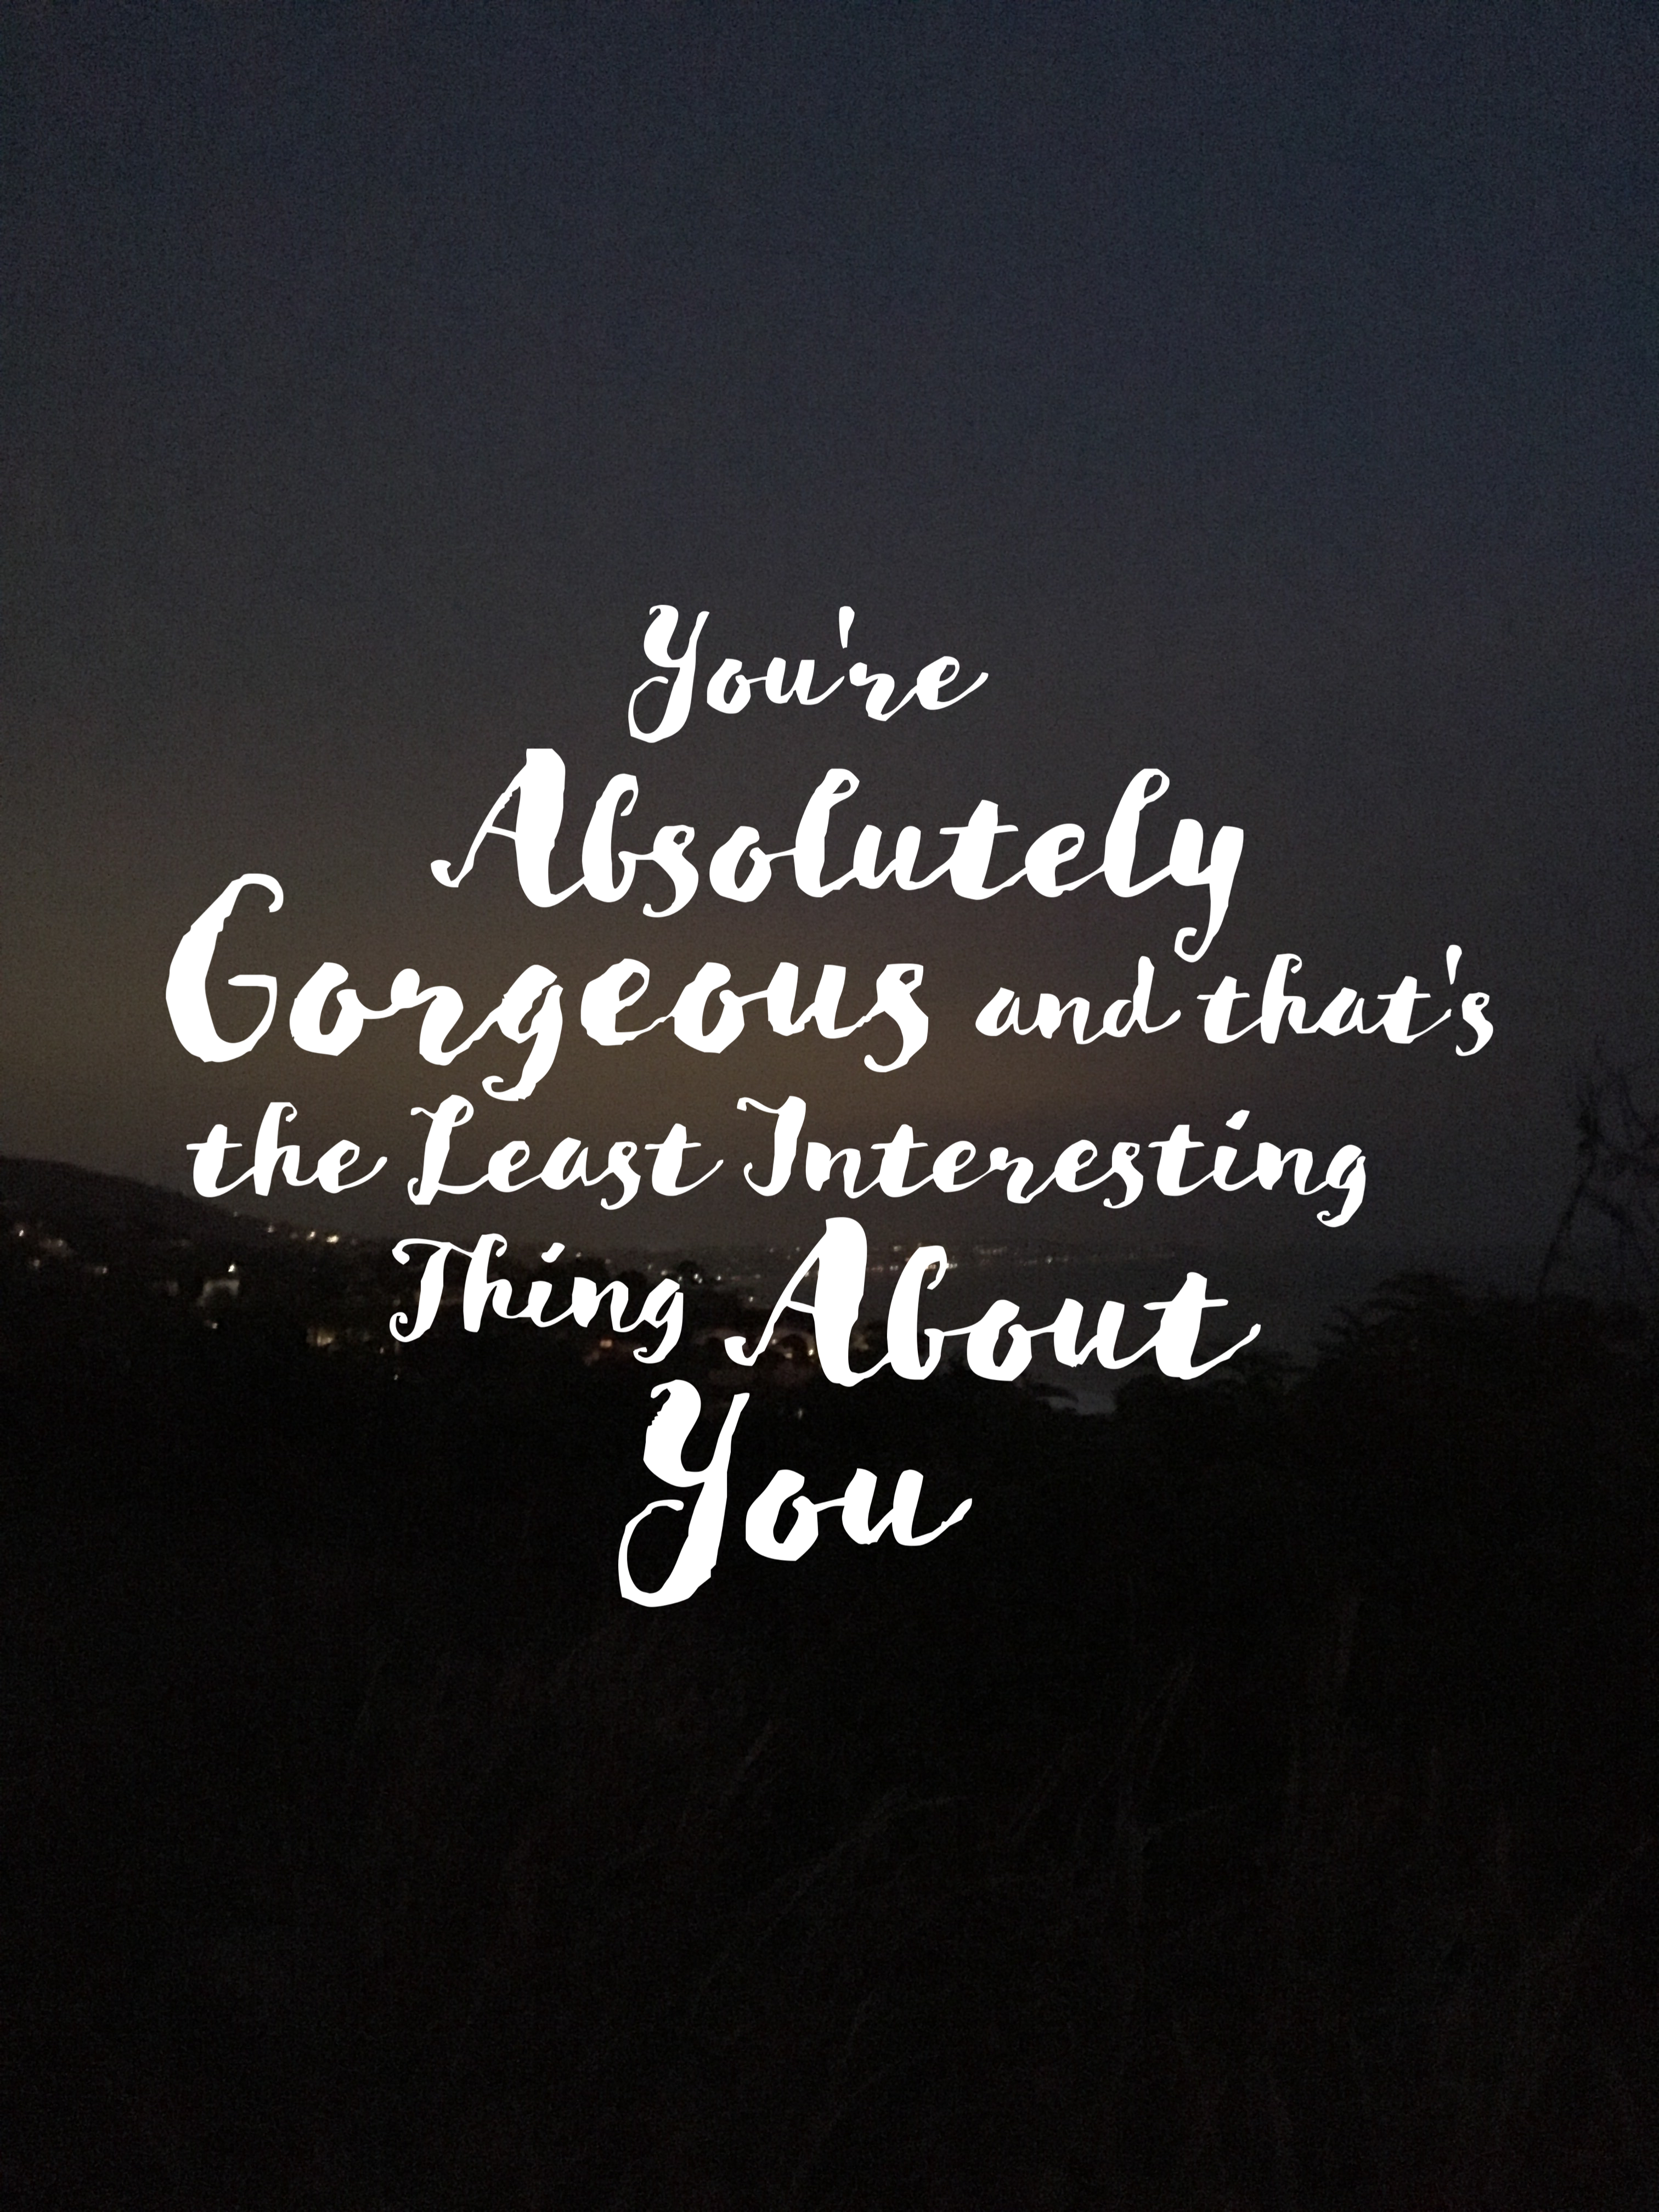 Quotes About Love And Relationships Youre Gorgeous Photo Quotes